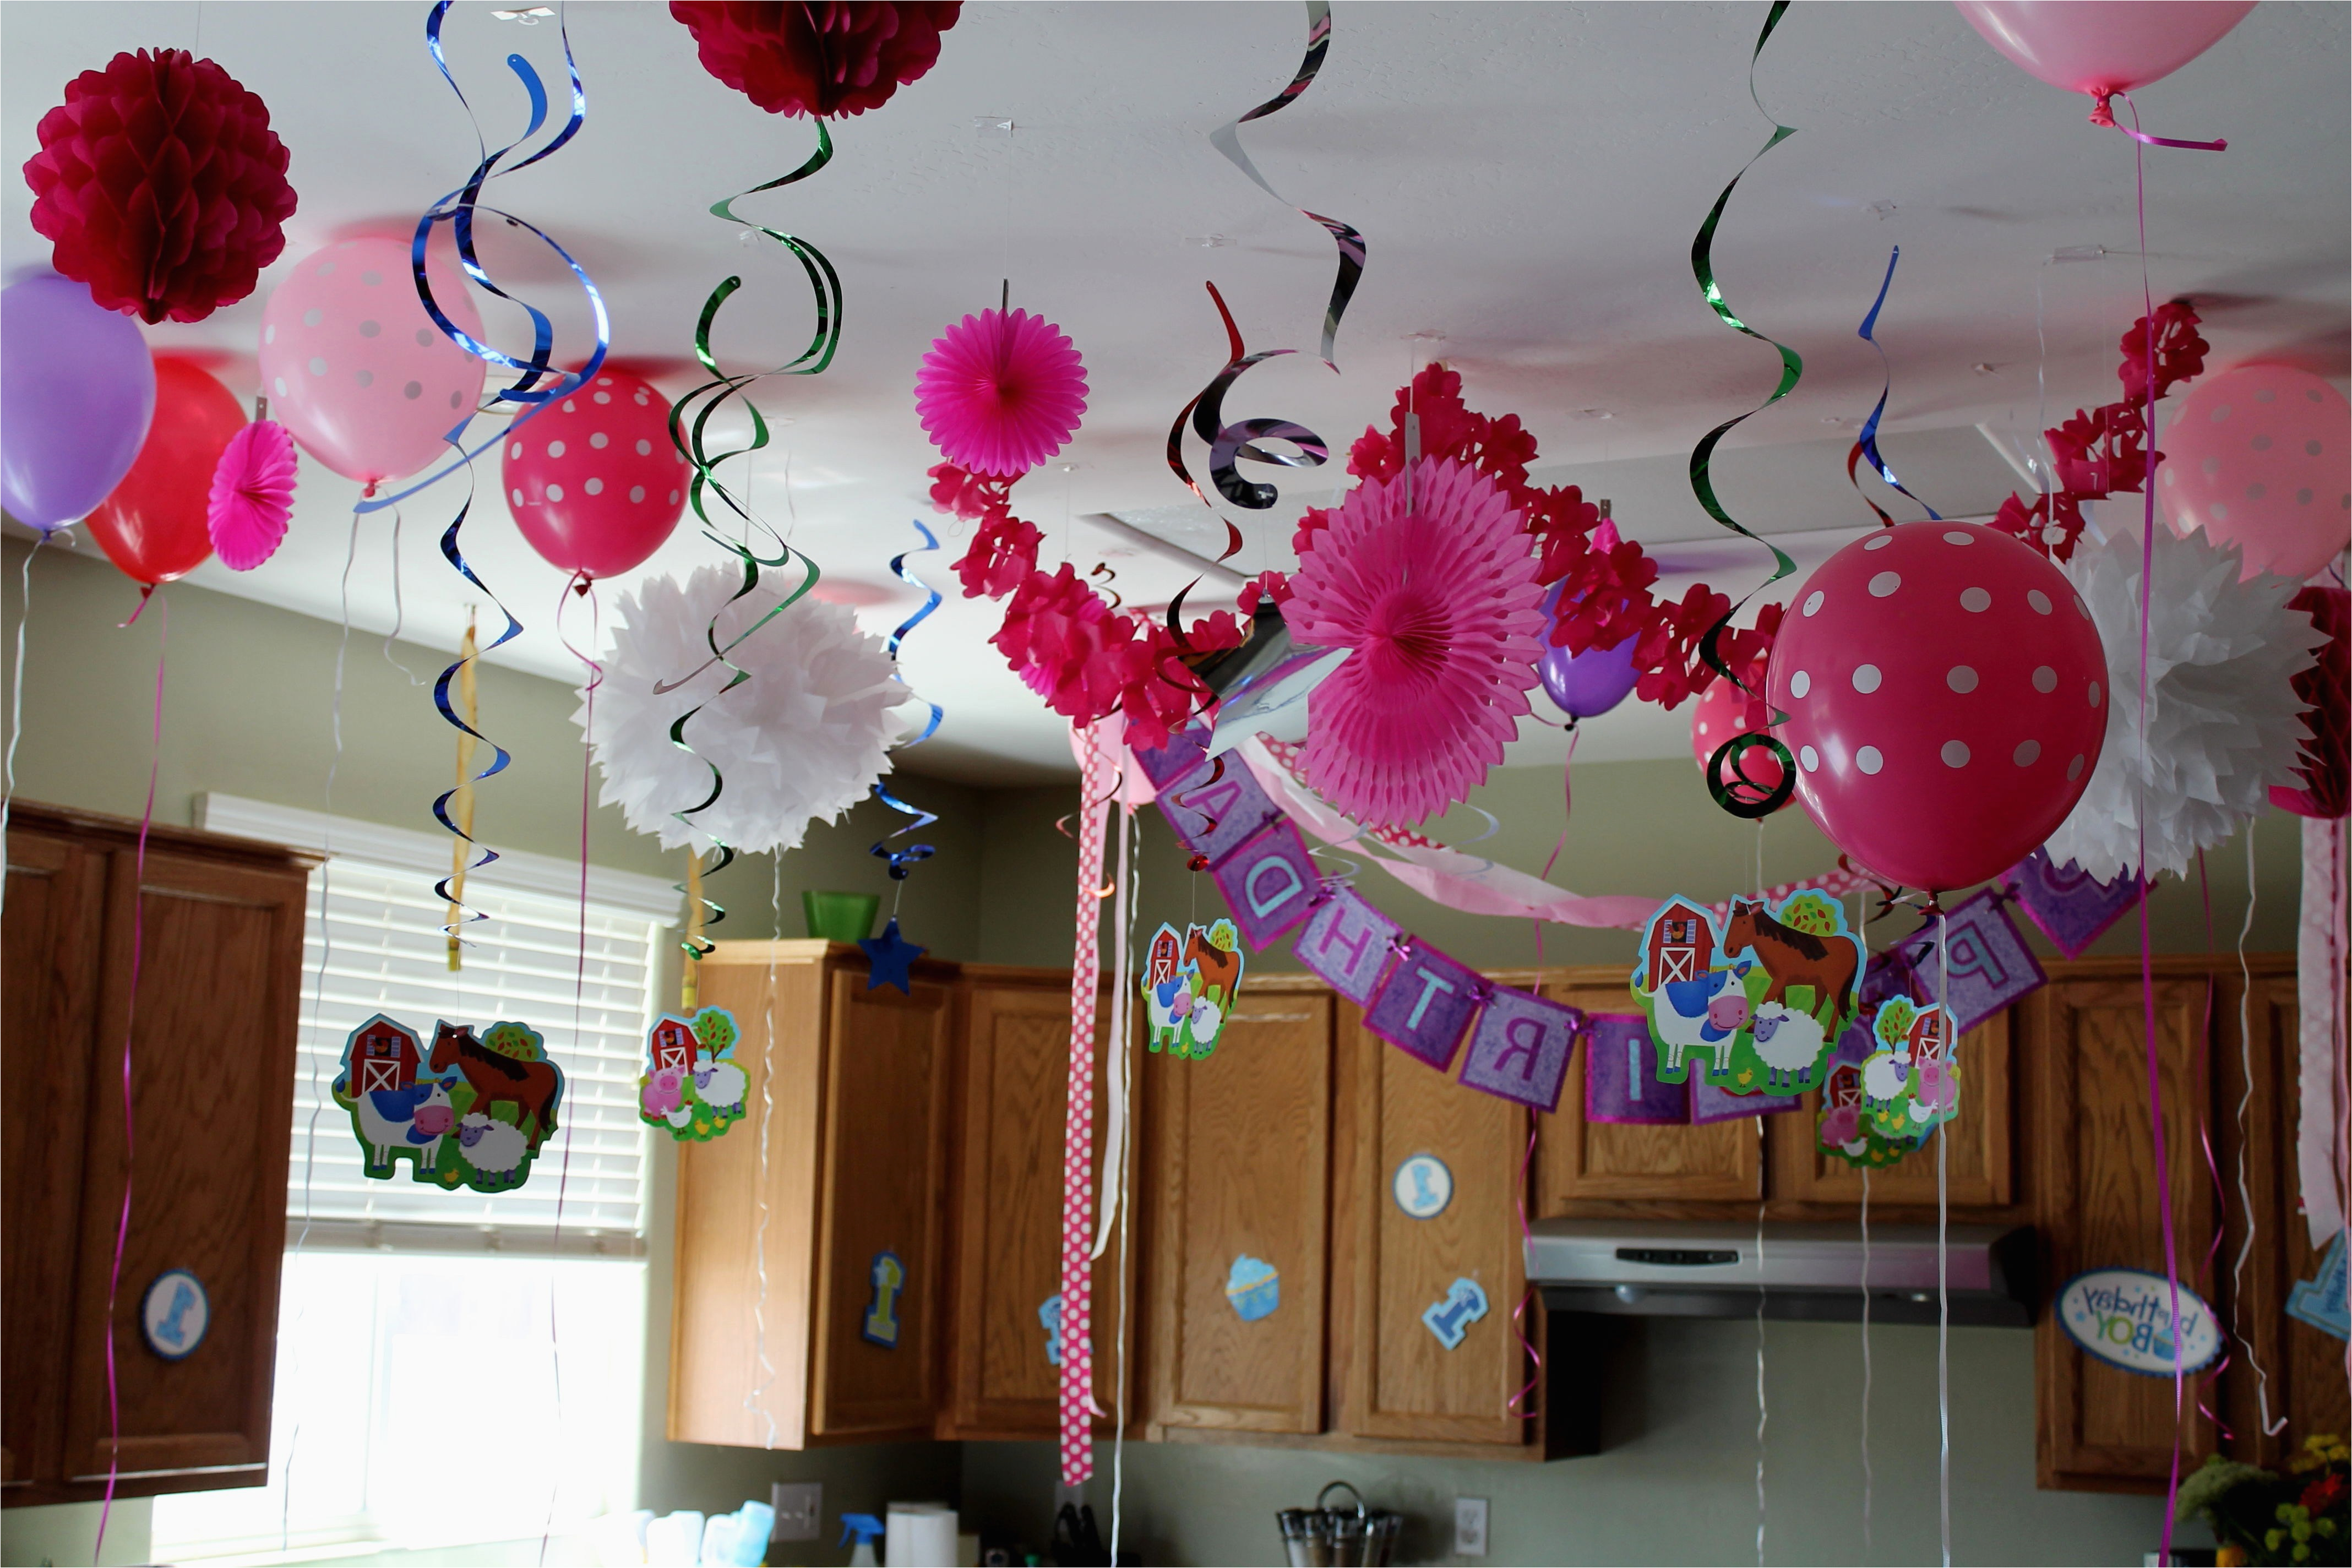 Decorating Ideas for Baby Girl Birthday Party Birthday Decoration Images for Baby Girl